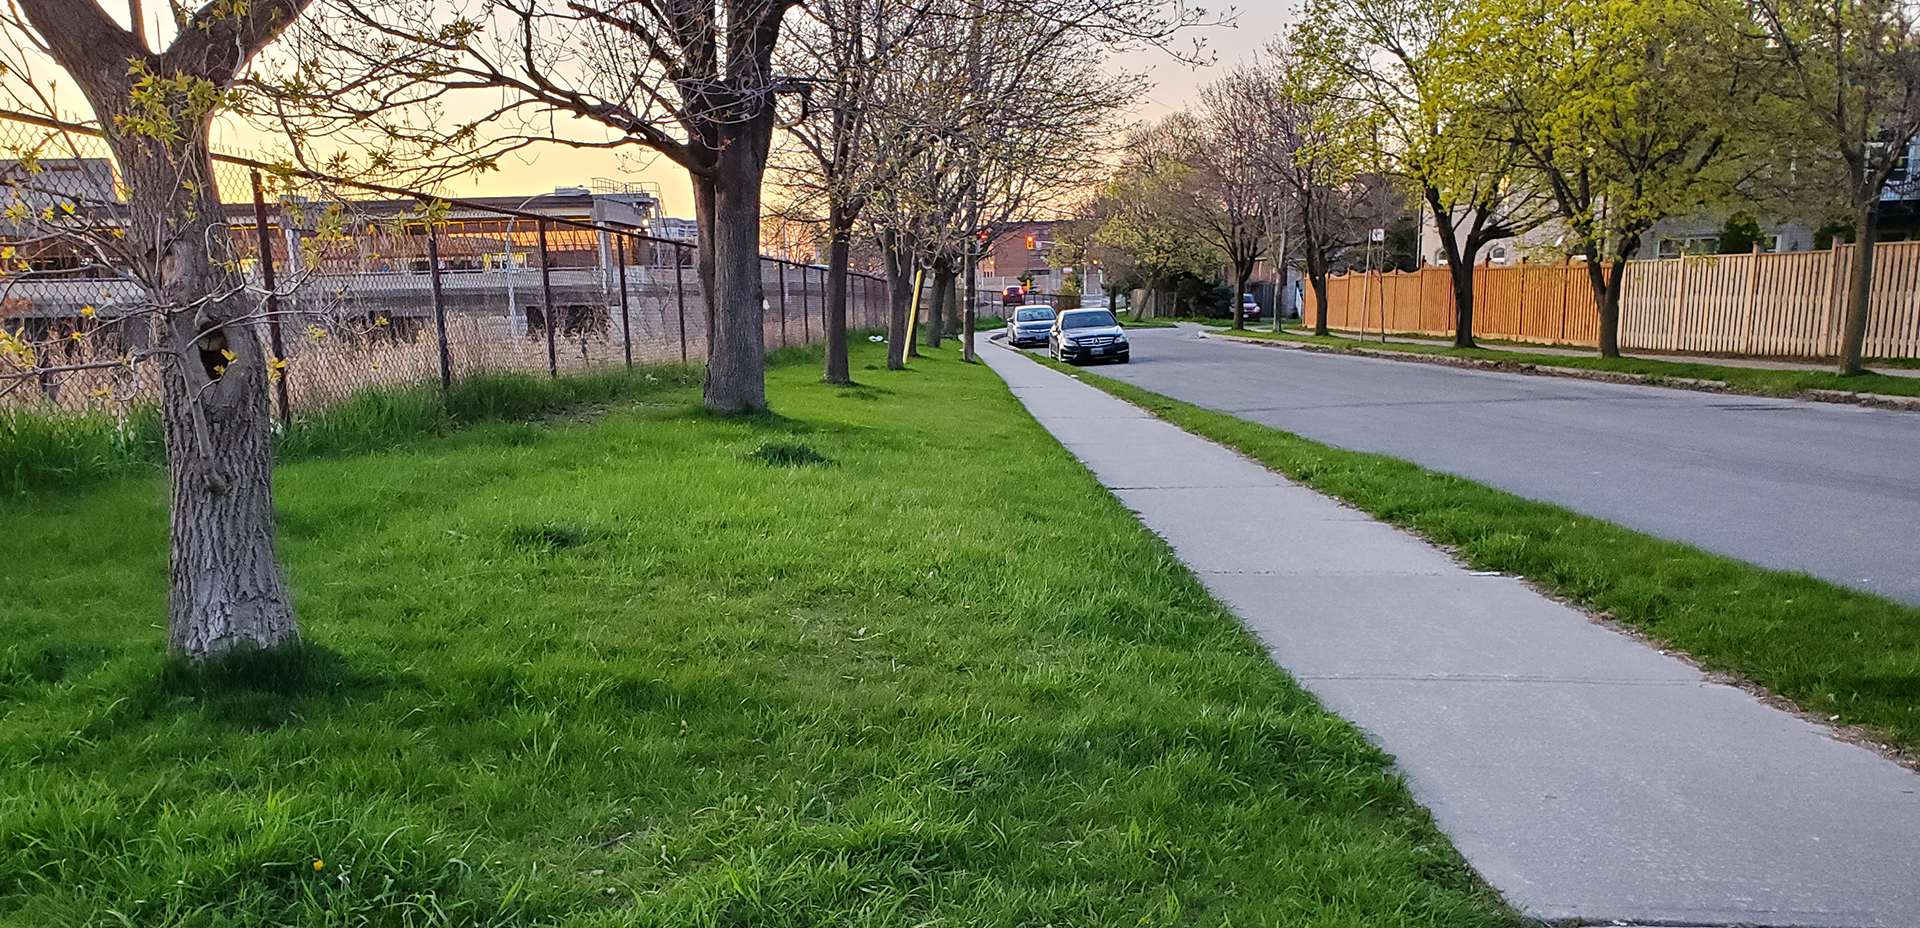 A Greenway Reconnecting Communities